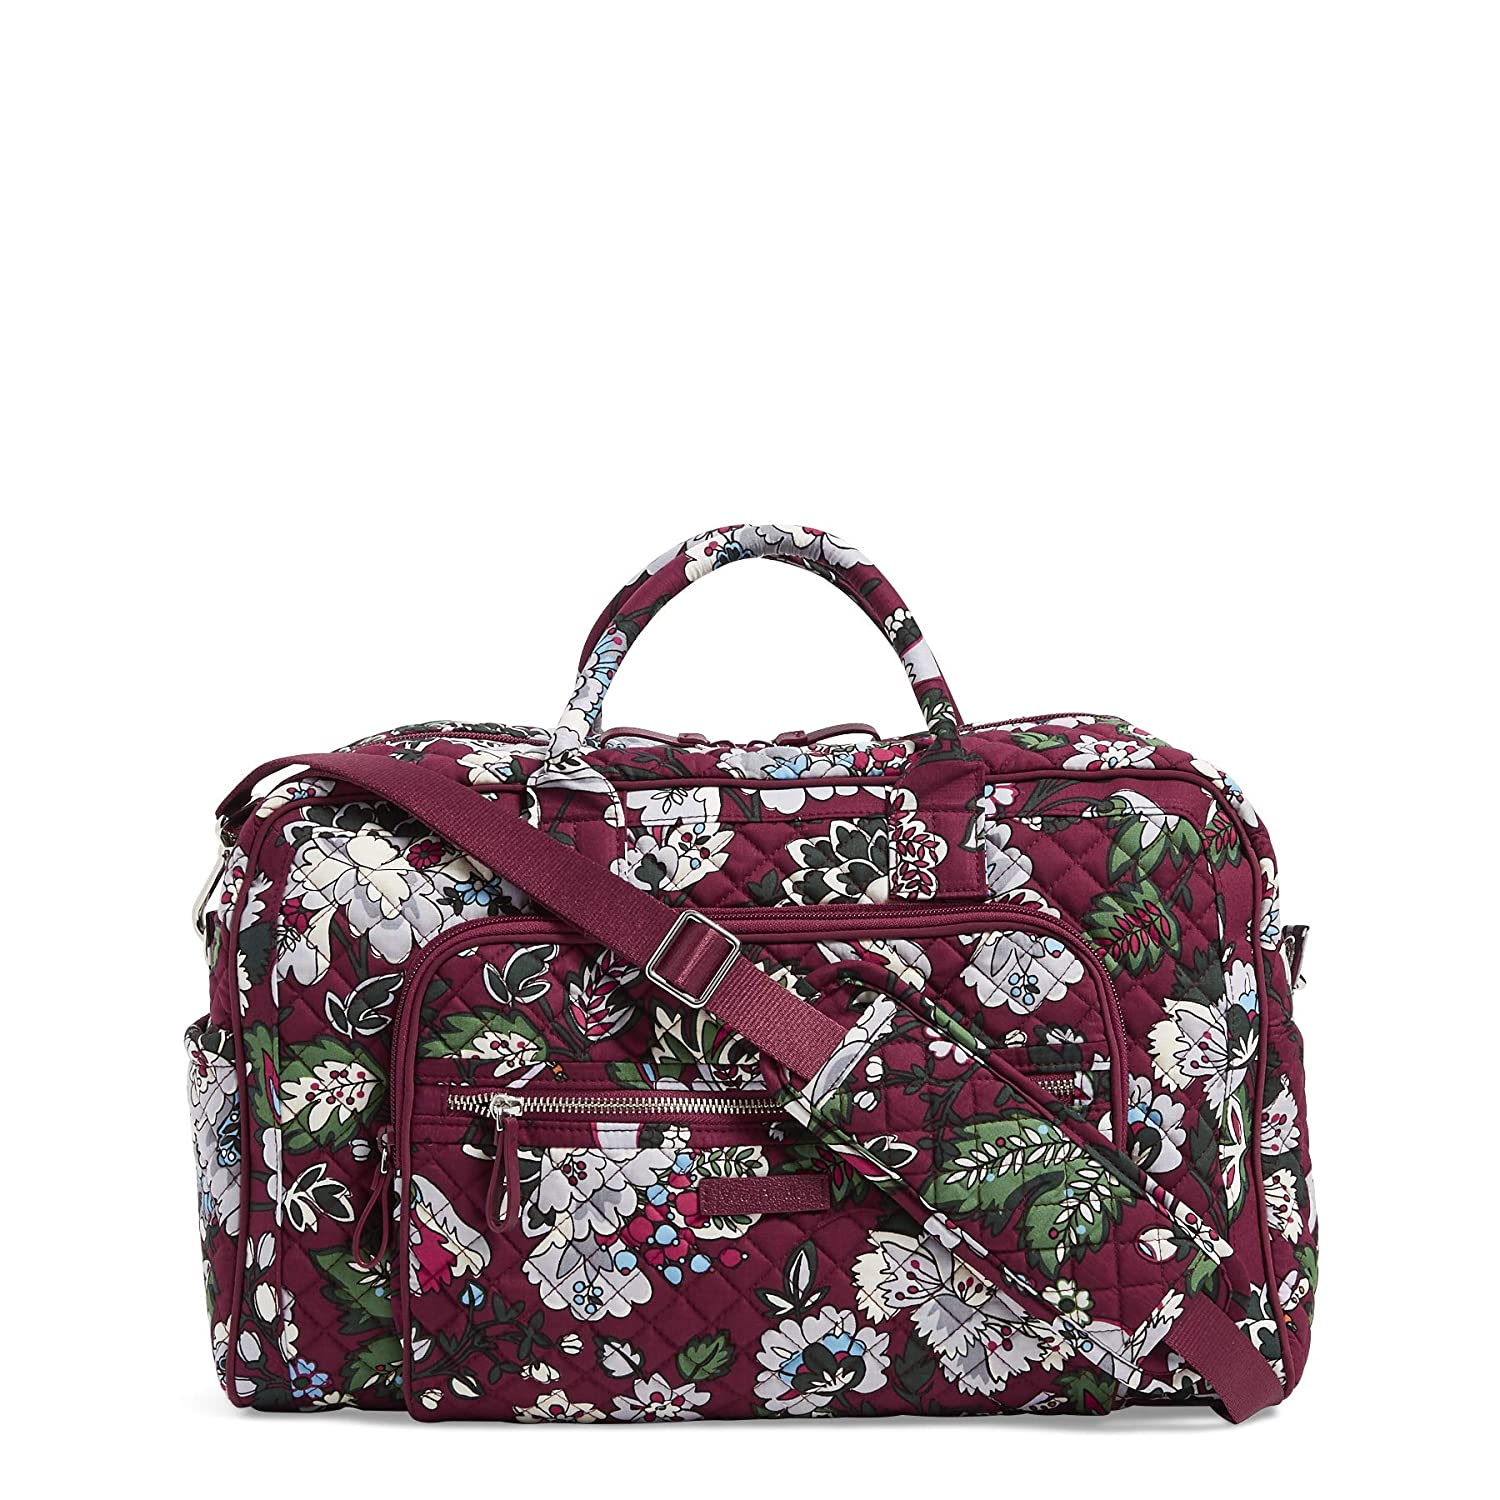 Amazon.com  Vera Bradley Iconic Compact Weekender Travel Bag ... 1a28785345d1b